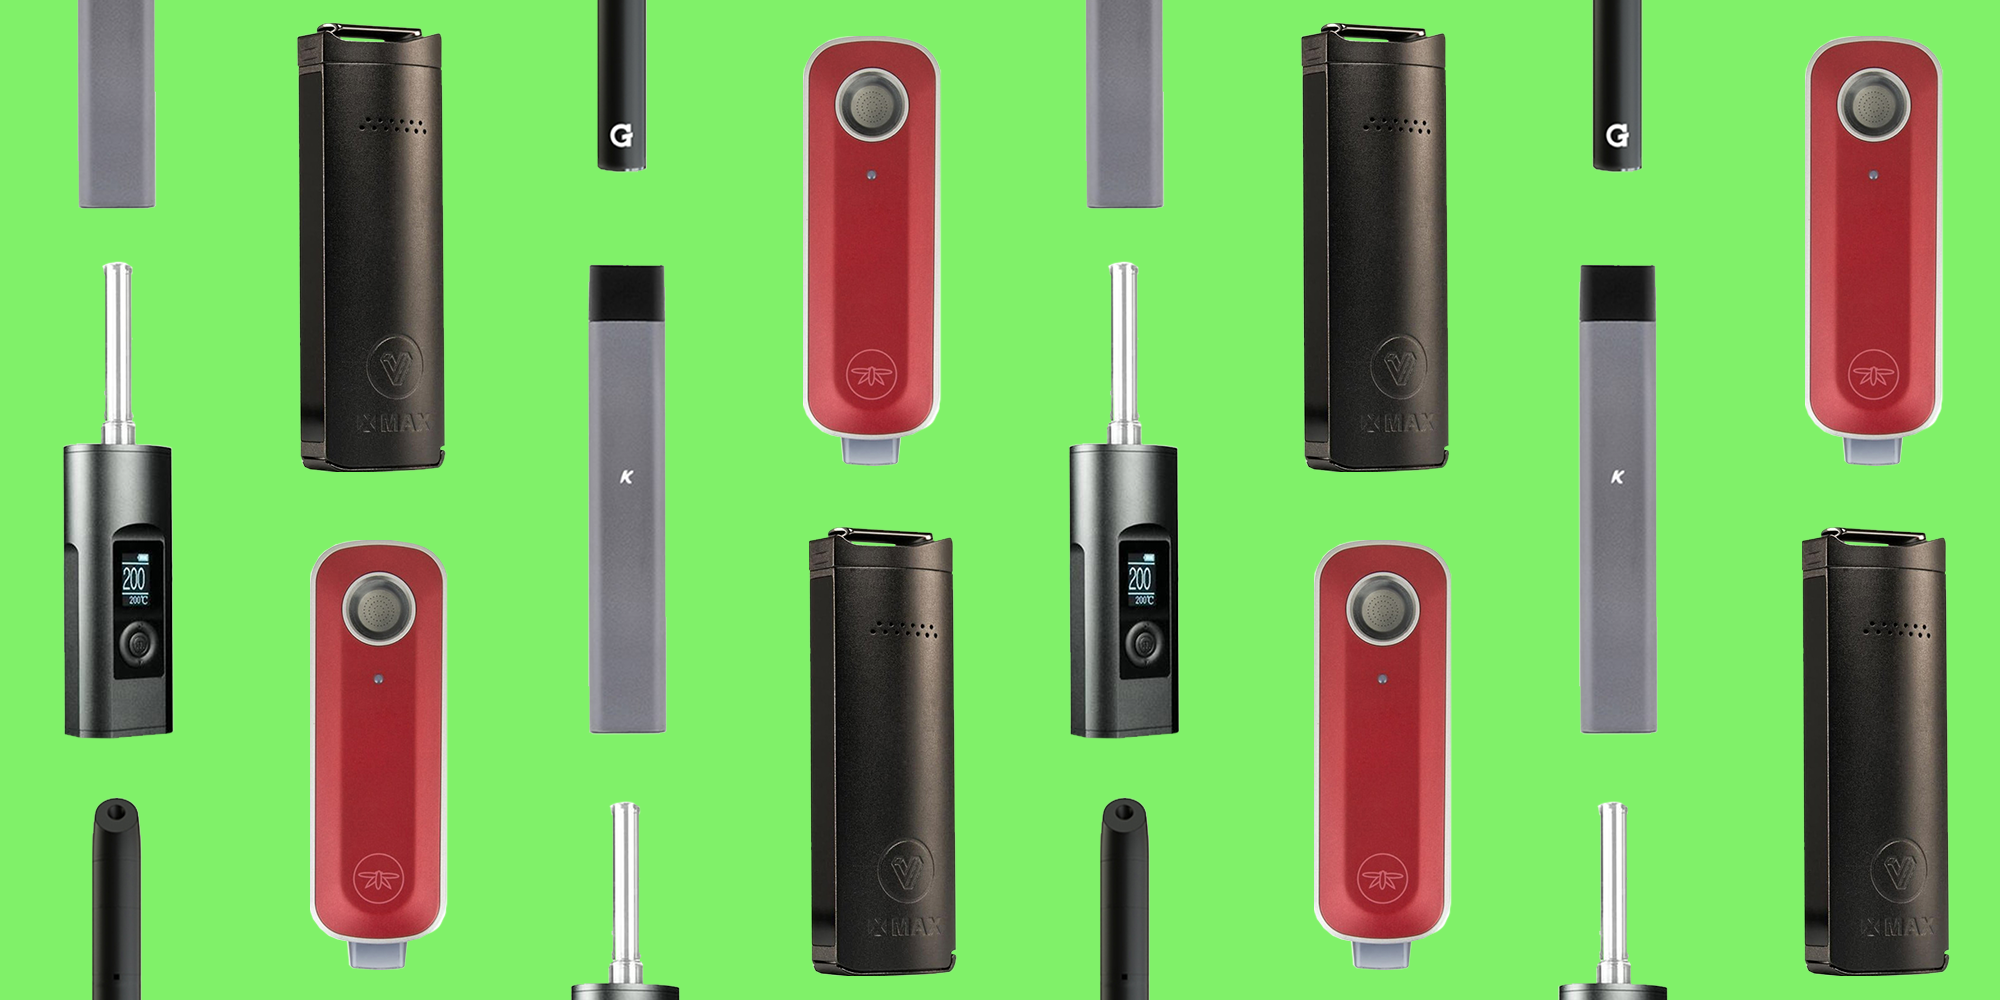 10 Best Weed Vaporizers 2019 - Top Marijuana Vapes to Buy